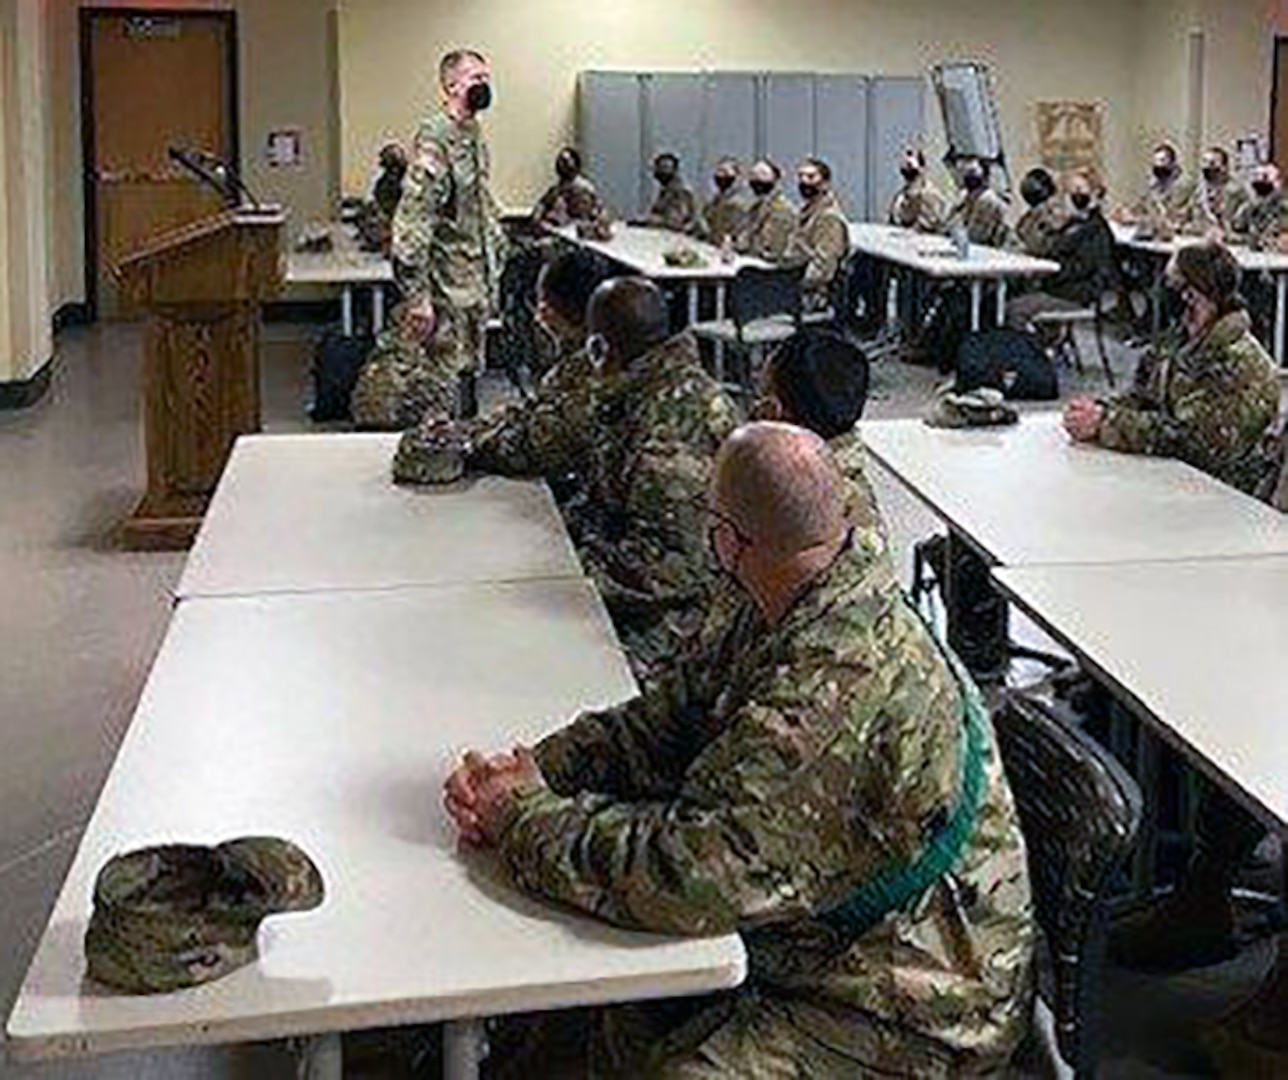 U.S. Army Medical Center of Excellence Command Sgt. Maj. Clark Charpentier discusses the Army Profession with Advanced Individual Training Soldiers assigned to the MEDCoE during Soldier in Transition Training, or SiTT, at Joint Base San Antonio-Fort Sam Houston last month.